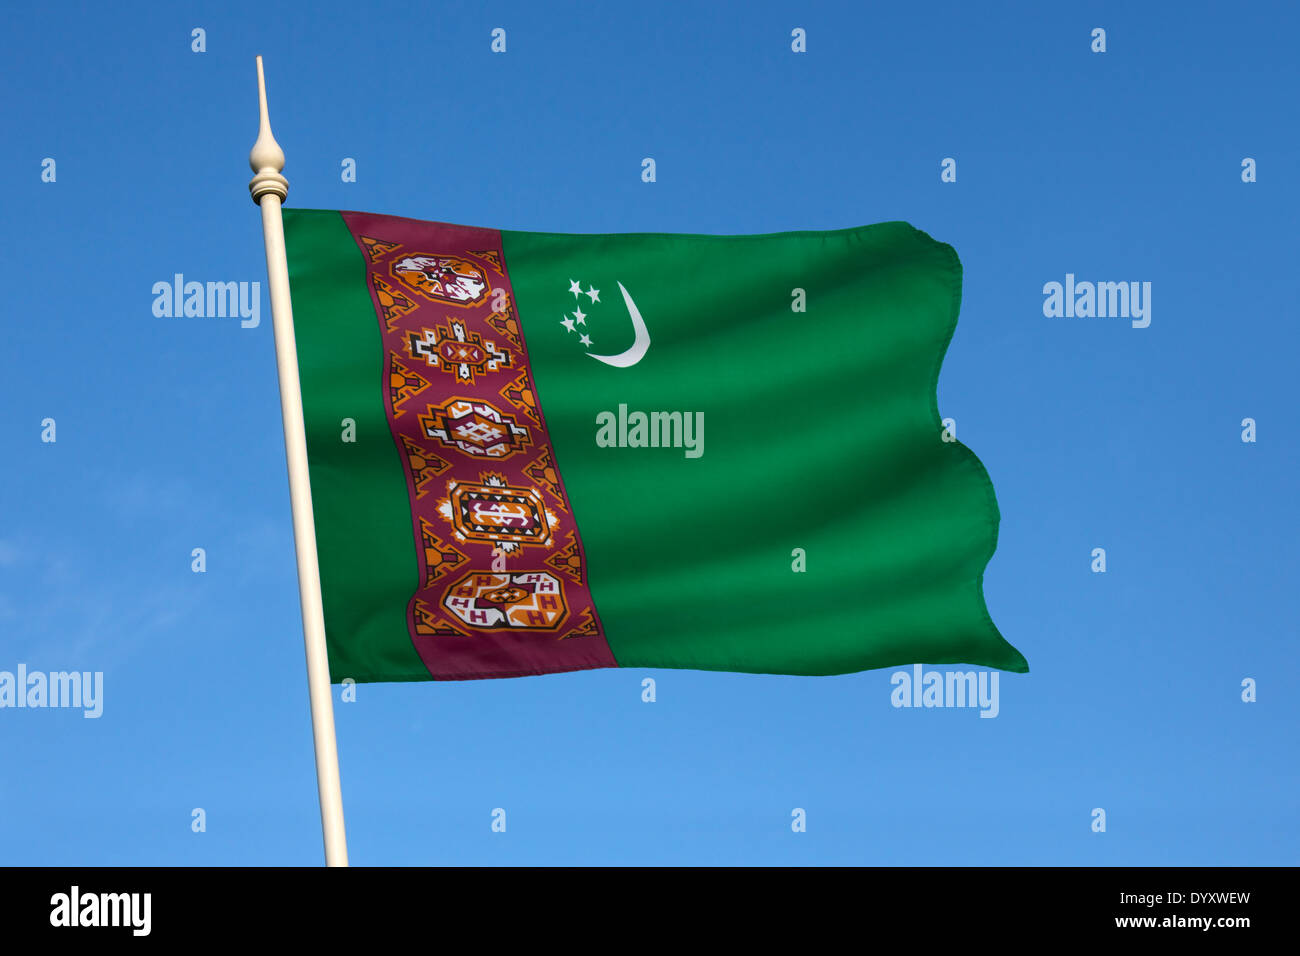 The national flag of Turkmenistan - Stock Image